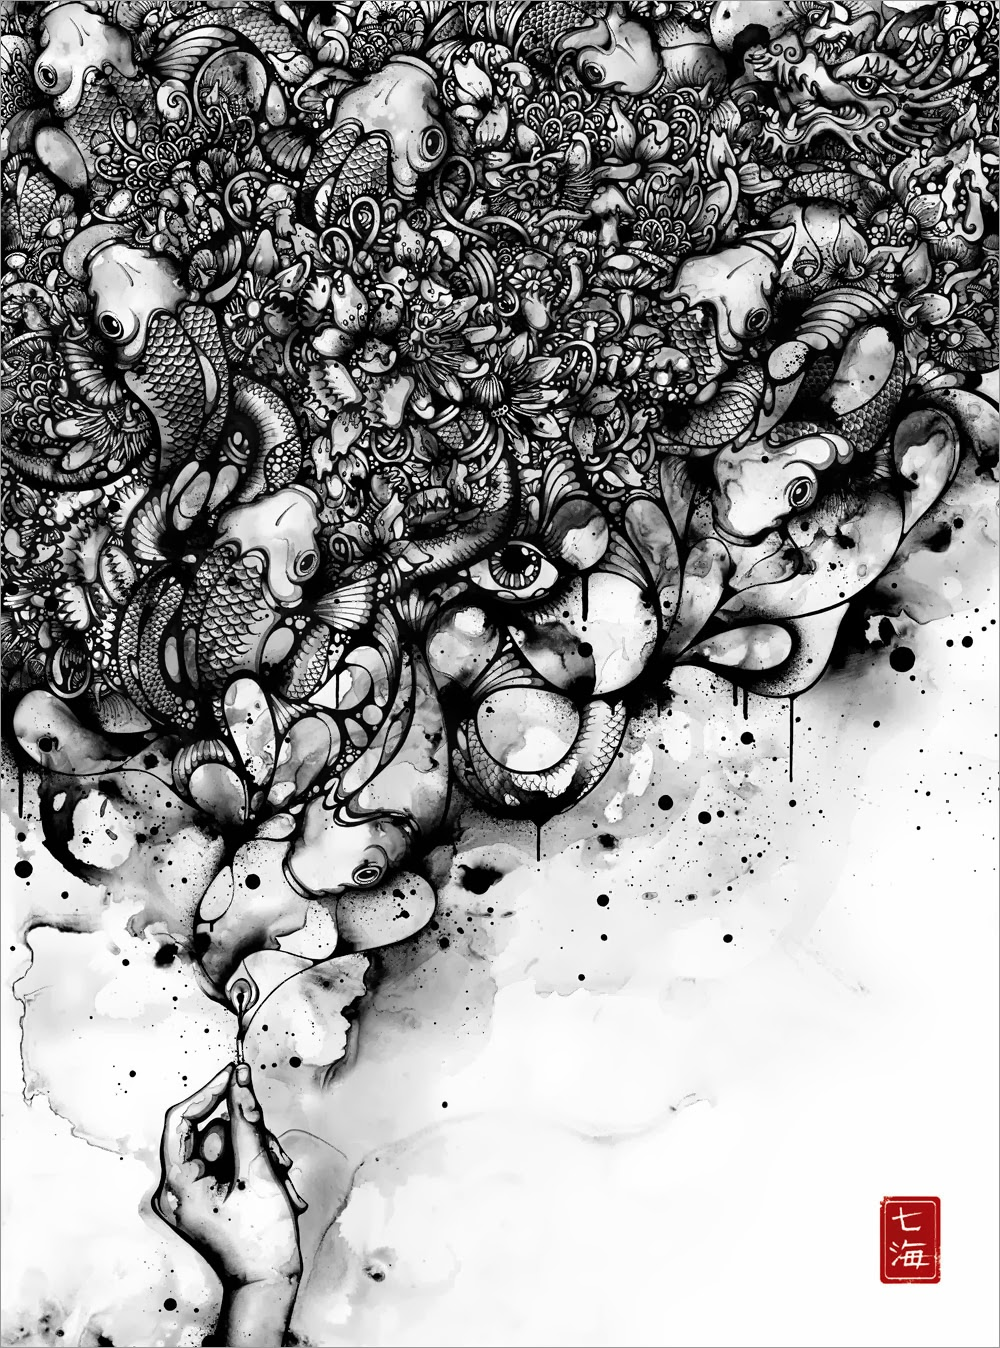 13-Smoked-Nanami-Cowdroy-Splashes-of-Ink-Drawings-www-designstack-co